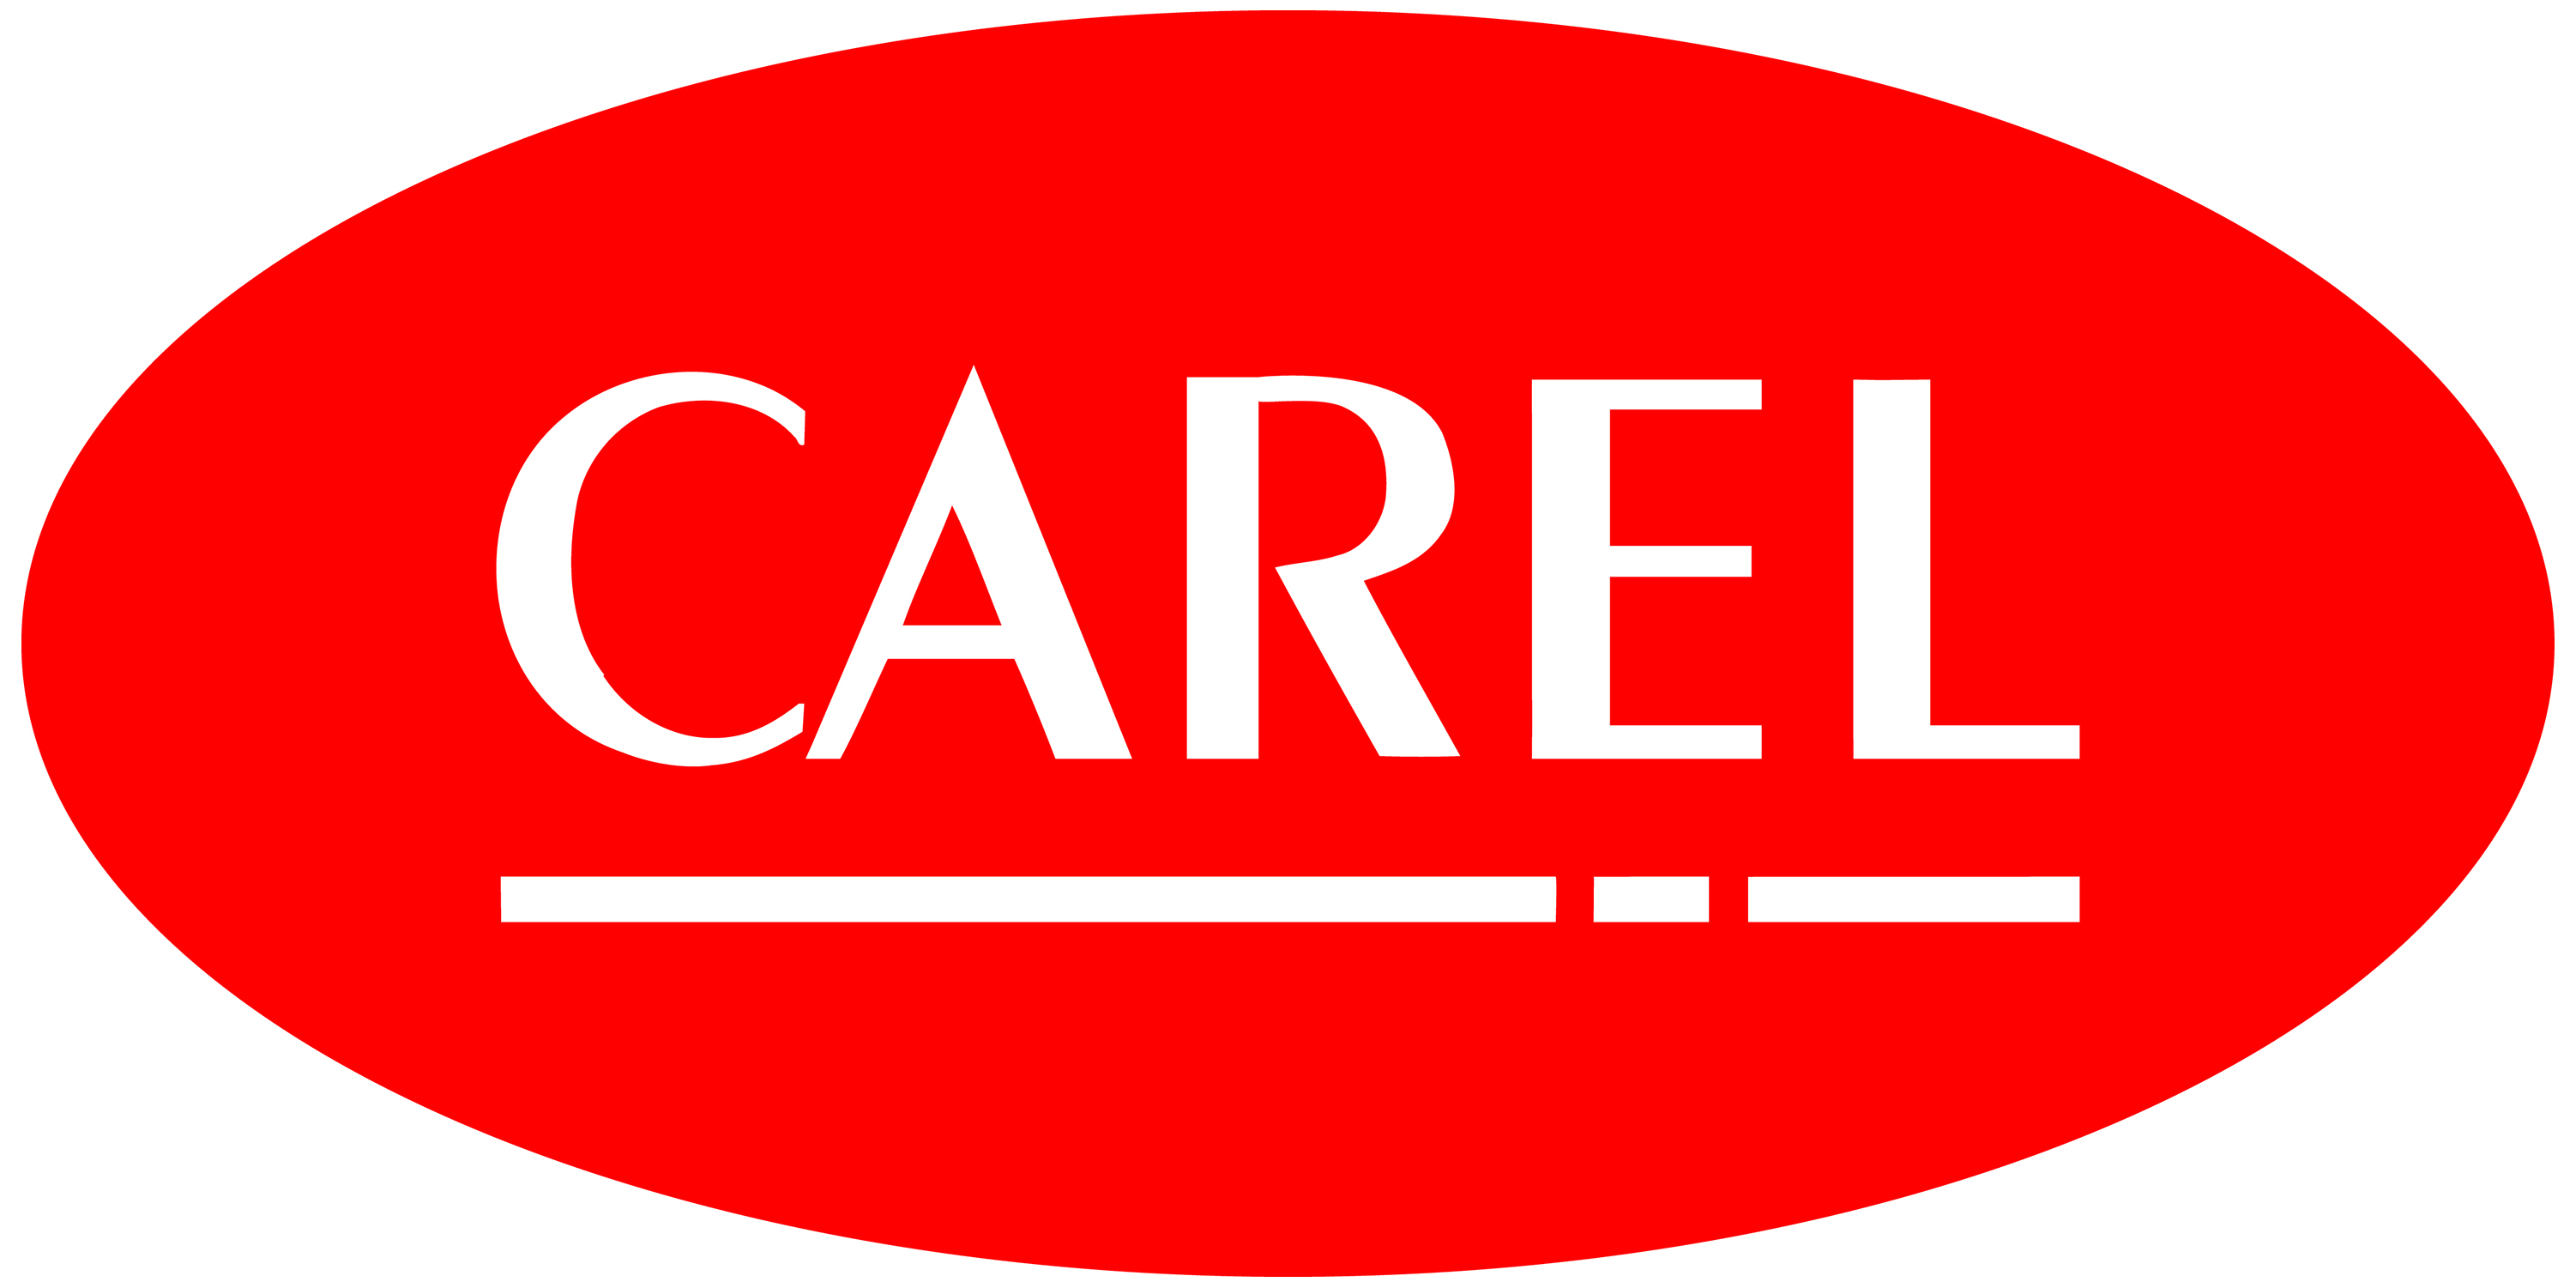 CAREL - High efficiency management per pompe di calore residenziali